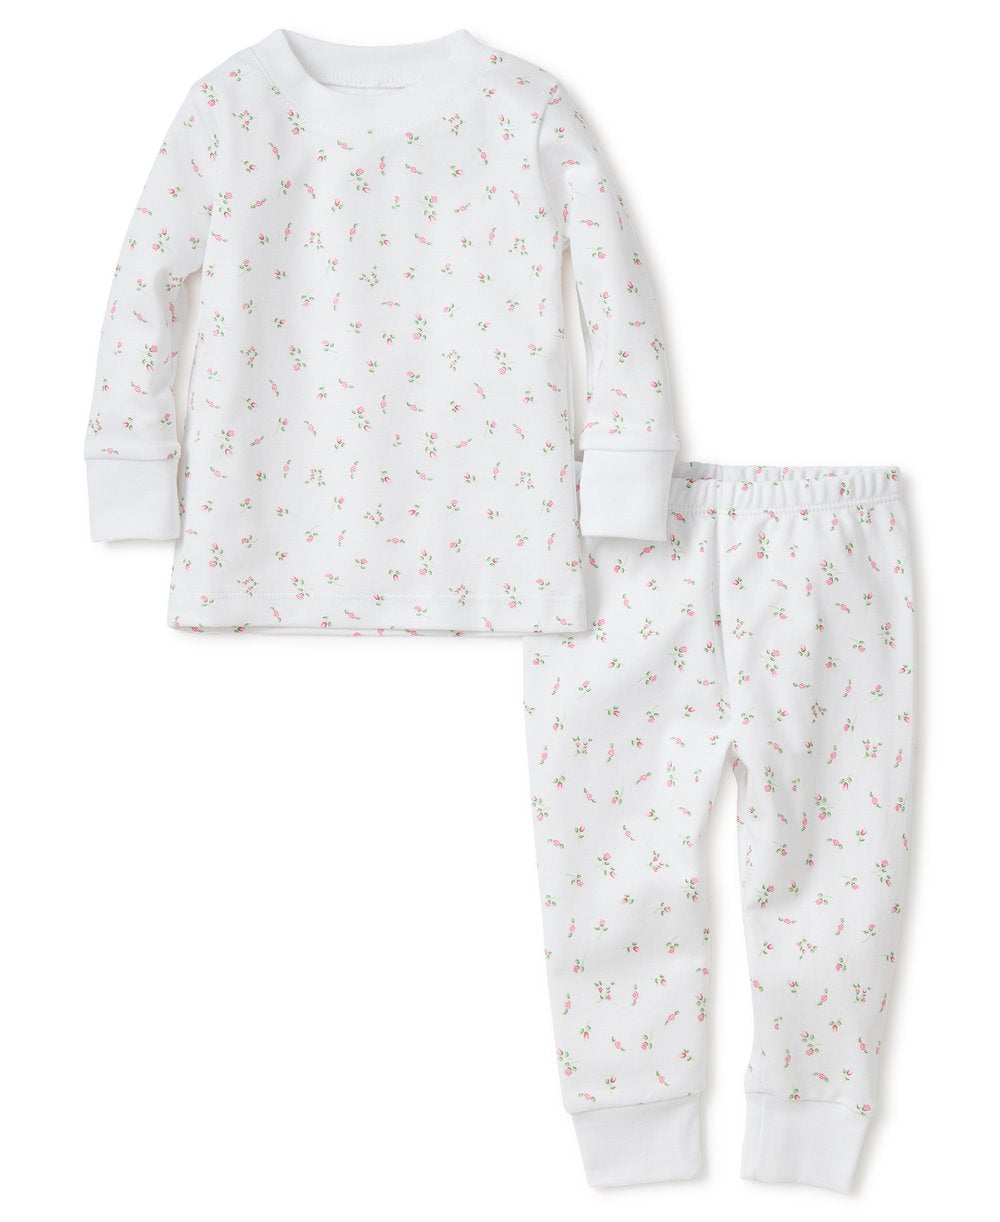 kissy kissy Garden Roses Toddler Pajama Set